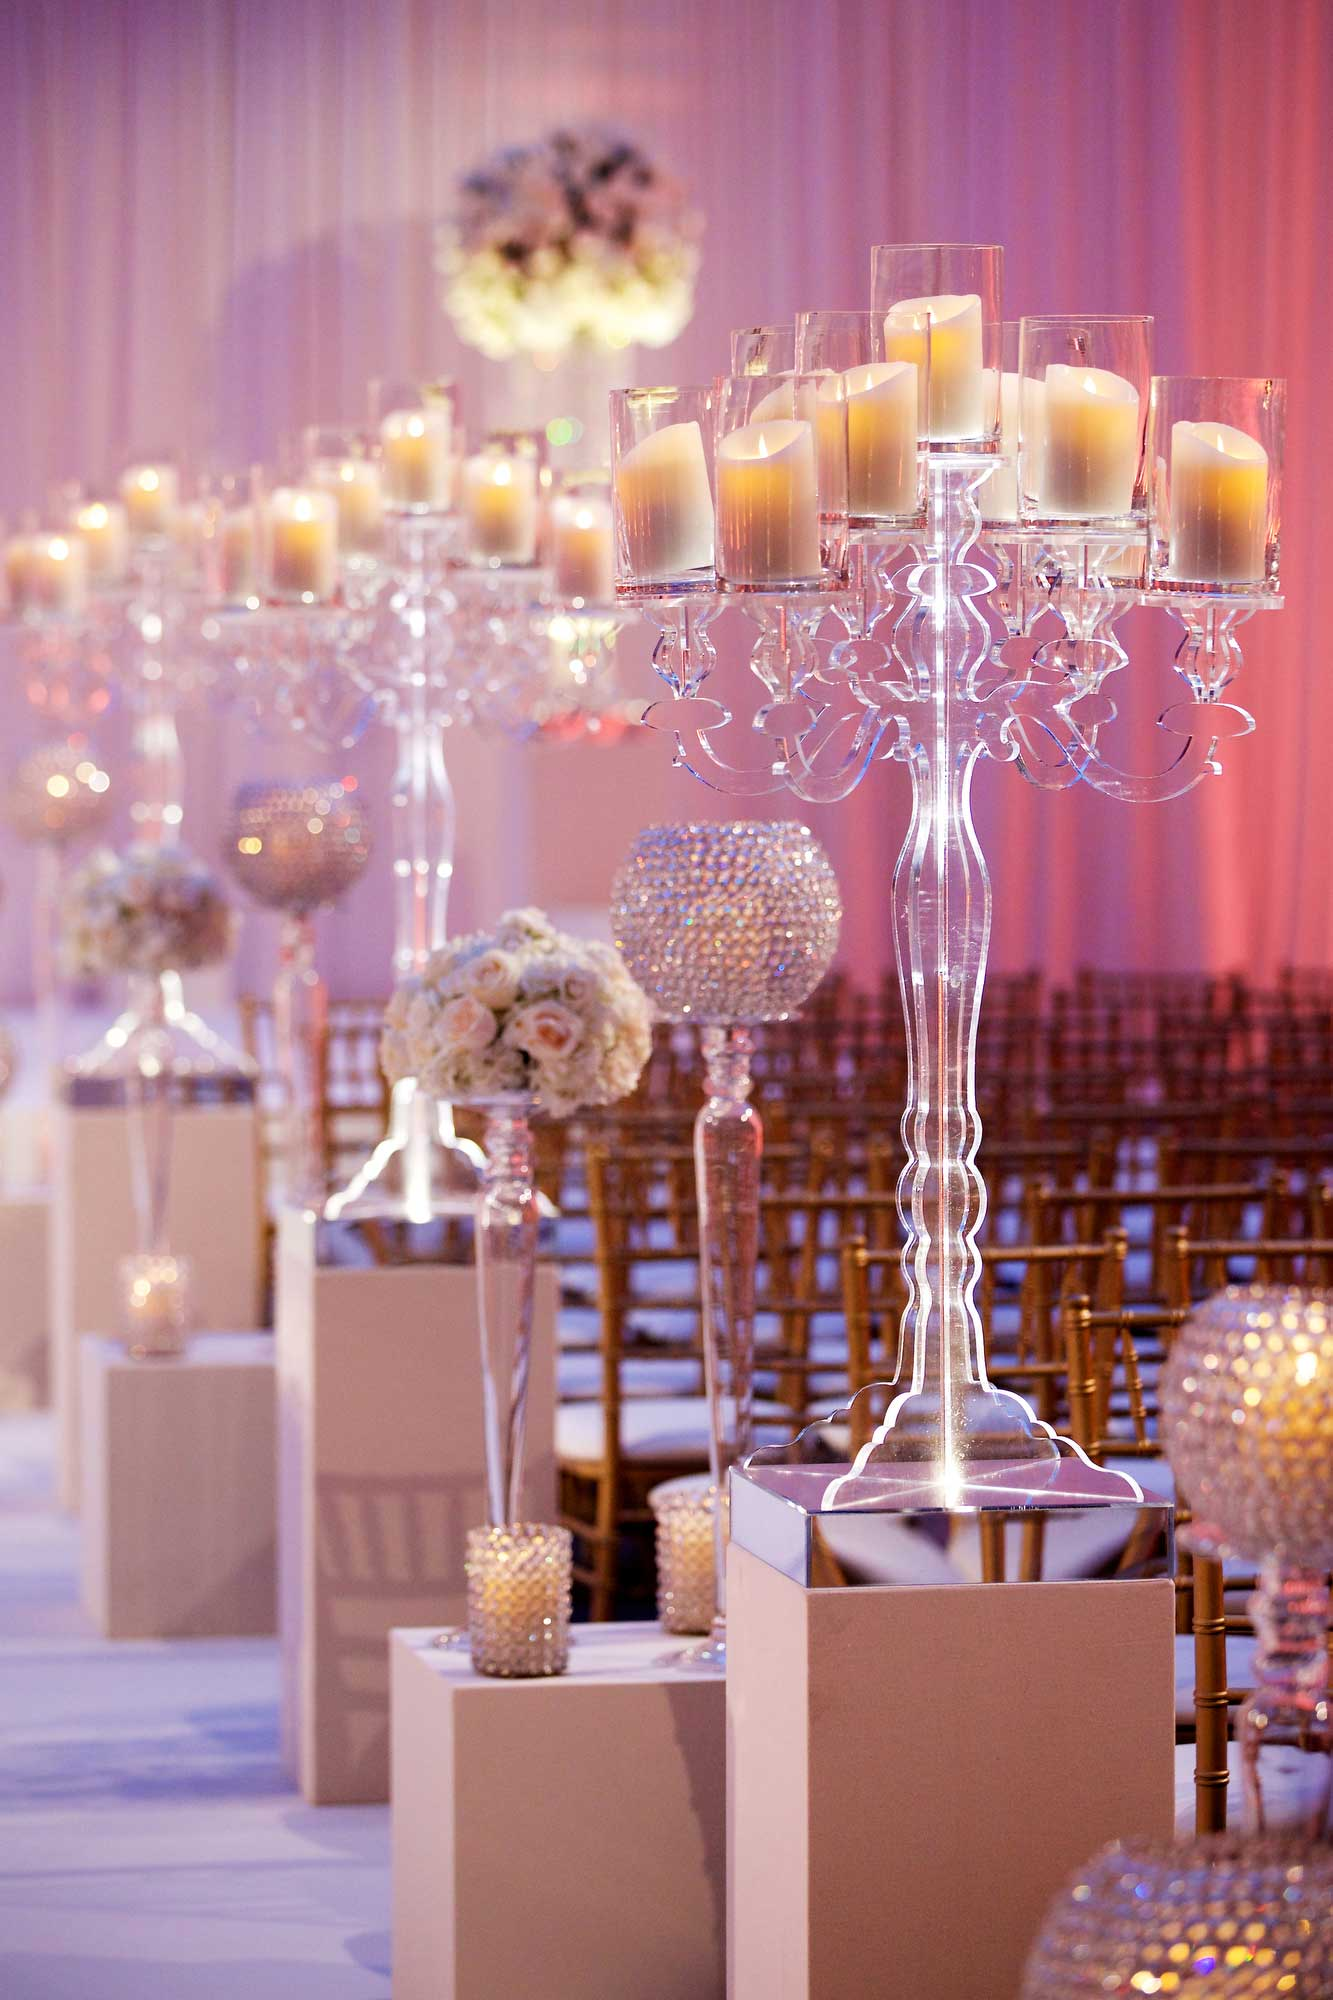 Clear lucite acrylic candelabra wedding decor at ceremony